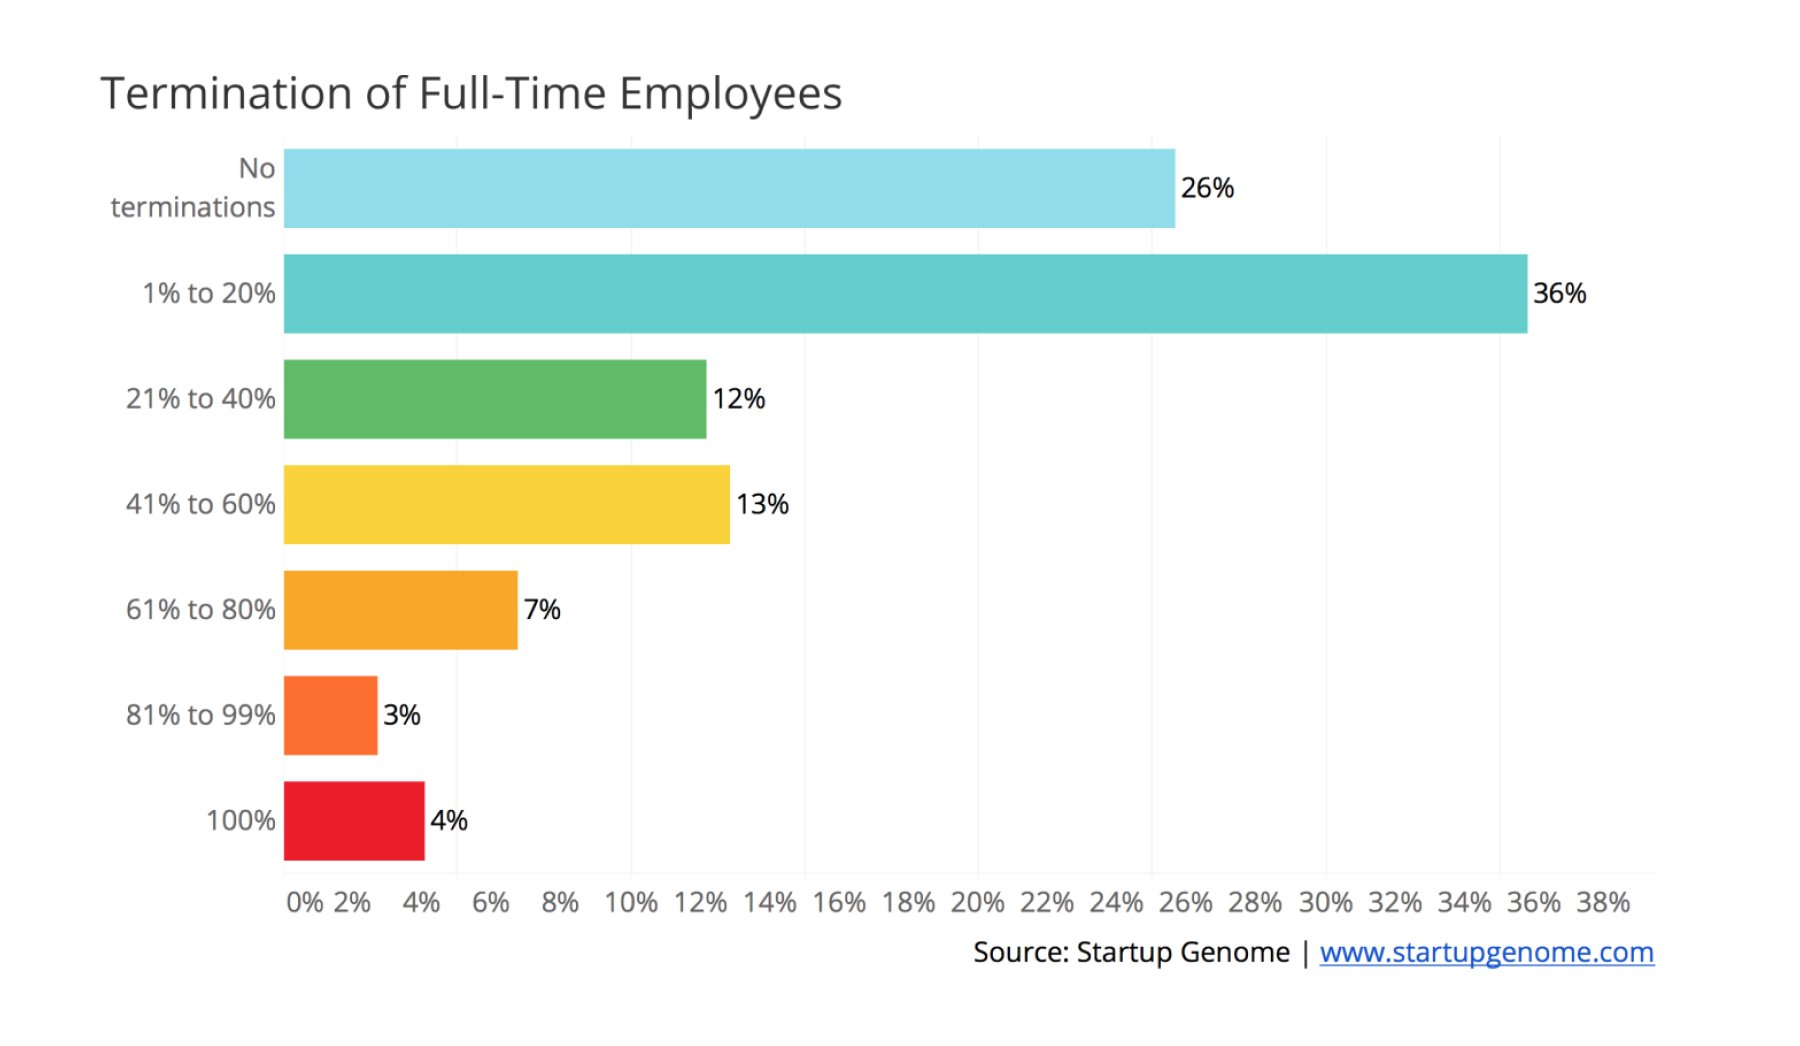 Termination of Full-time employees